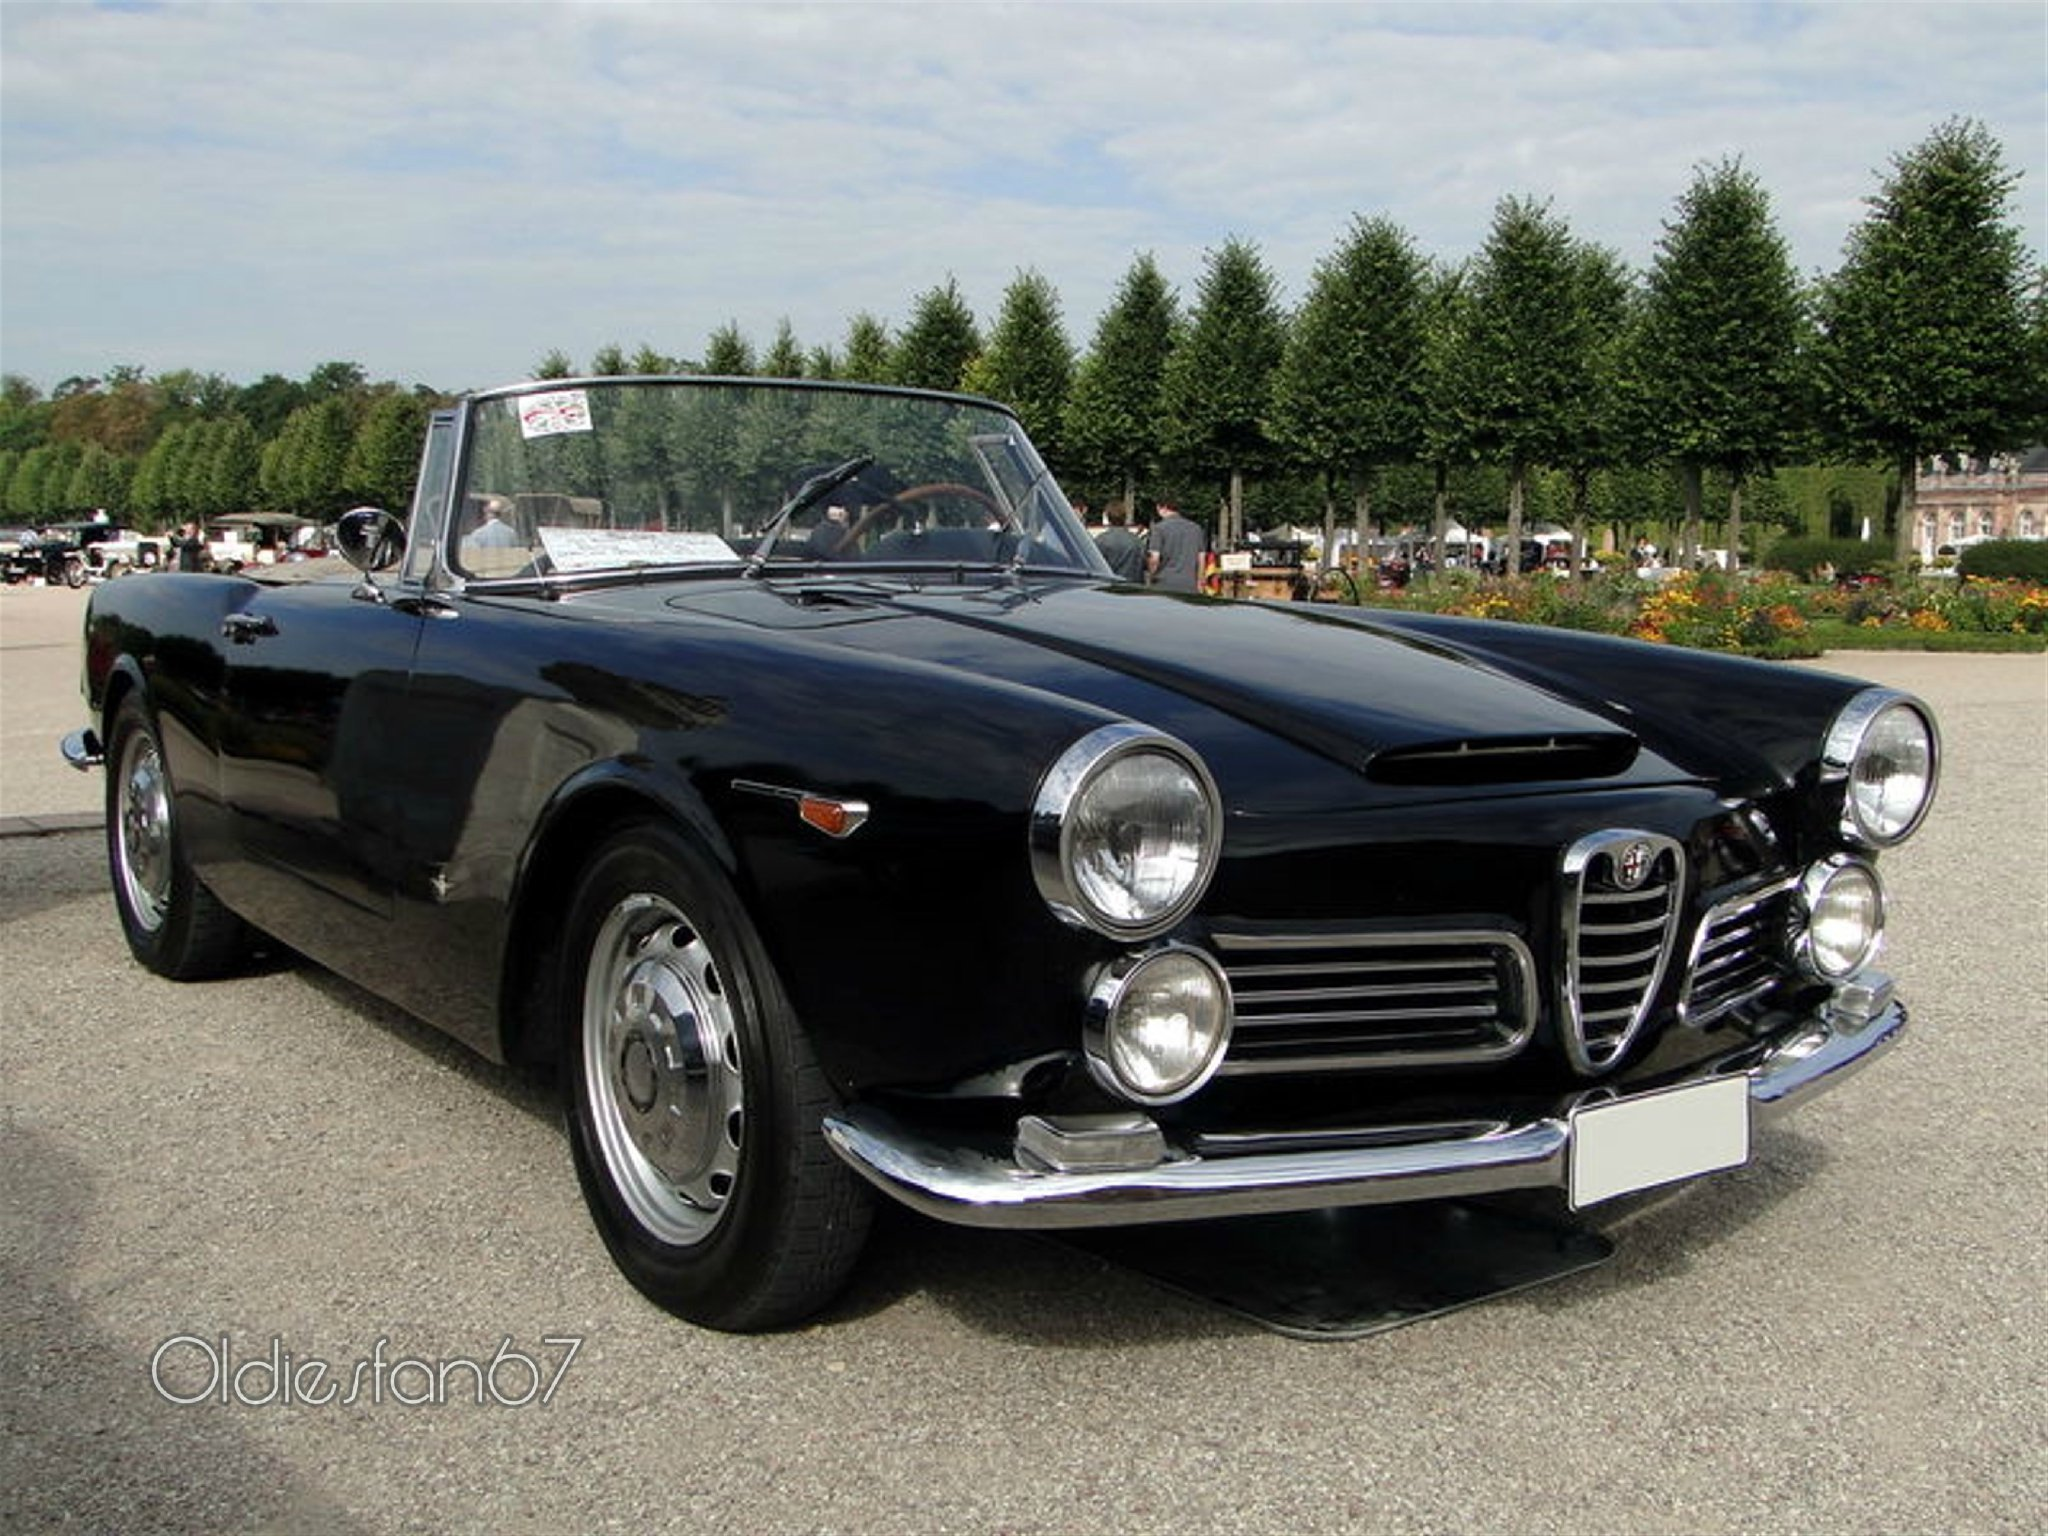 alfa romeo 2600 spider classic cars convertible wallpaper 2048x1536 616354 wallpaperup. Black Bedroom Furniture Sets. Home Design Ideas